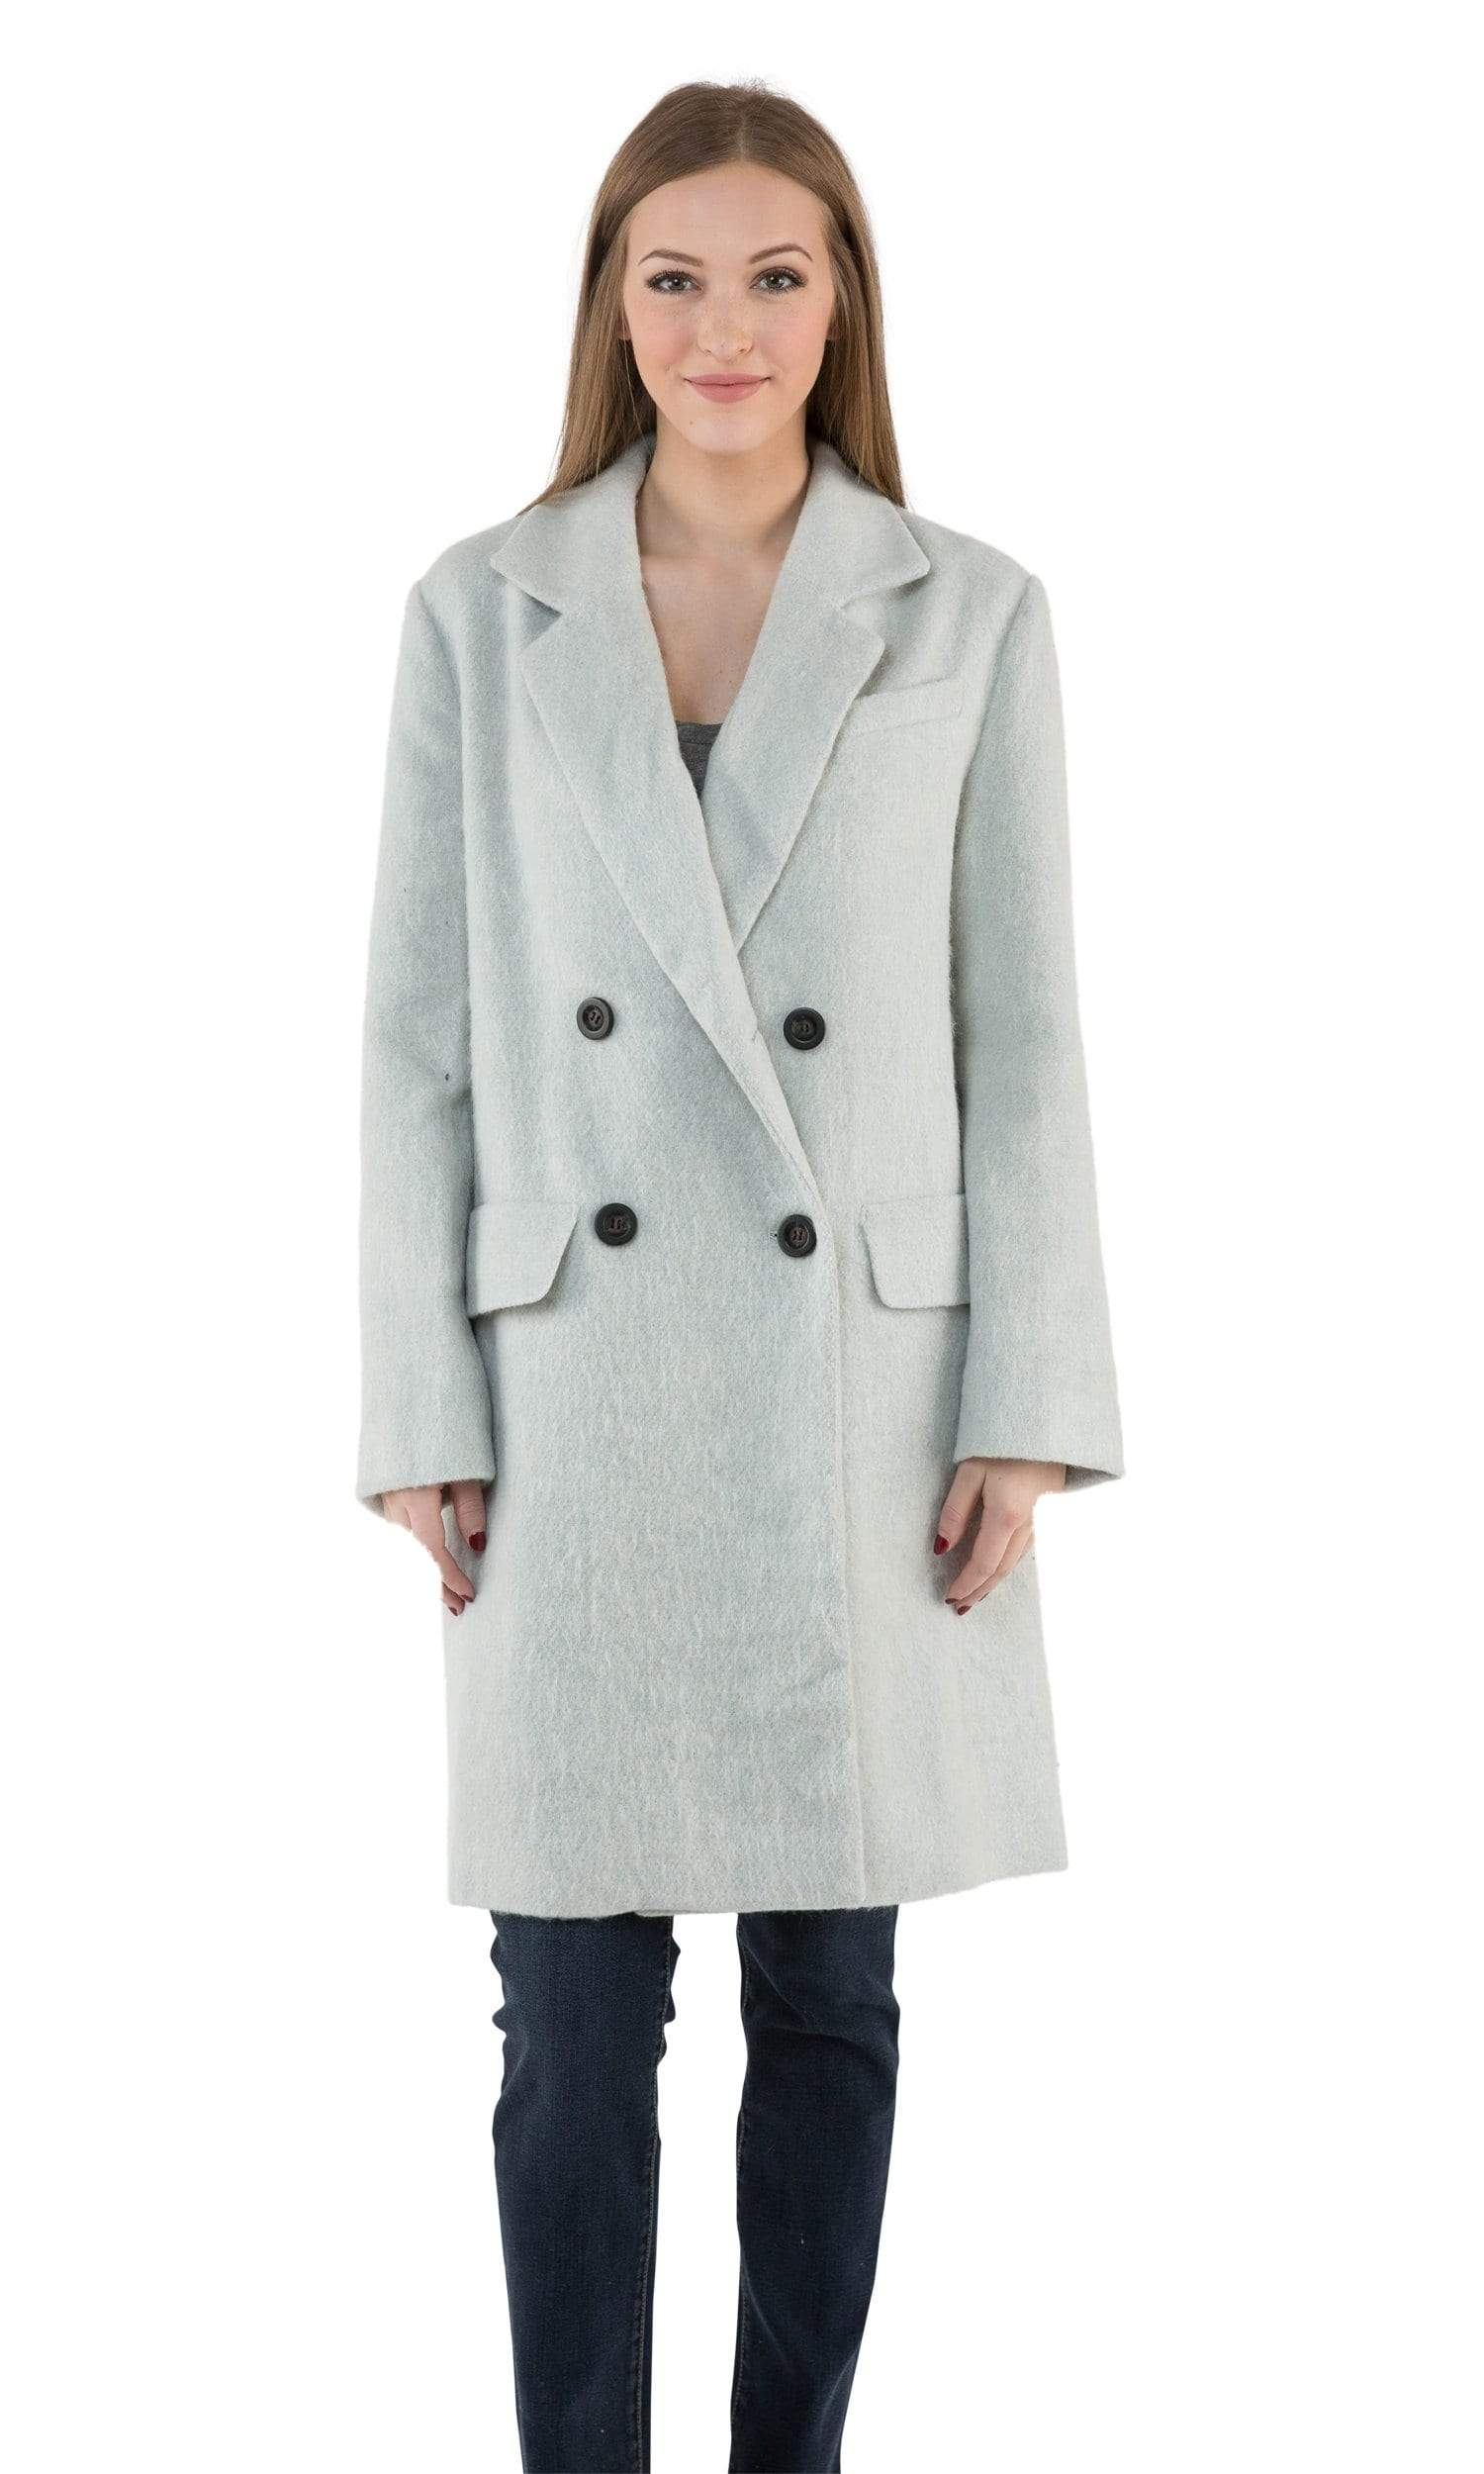 J.O.A. Double Breasted Coat with Notched Collar